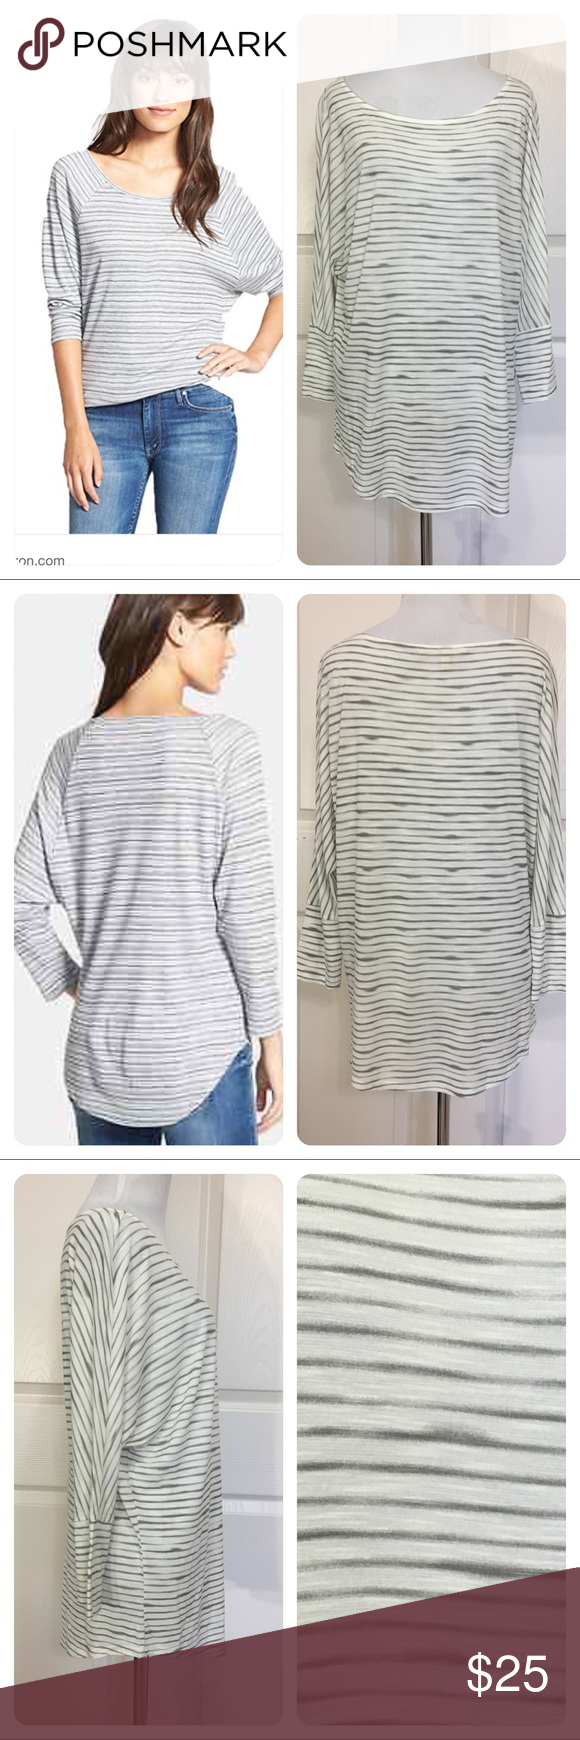 Soft Joie Naina Heather Grey Stripe Viscose Top Soft Joie Naina Heather Grey Stripe Dolman Sleeve Viscose Top.  Artfully imprecise stripes relax a fluid, knit pullover styled with a bateau neckline and three-quarter dolman sleeves. 100% viscose. Hand wash cold, dry flat. Small mark on back of shirt. Light wear. Joie Tops